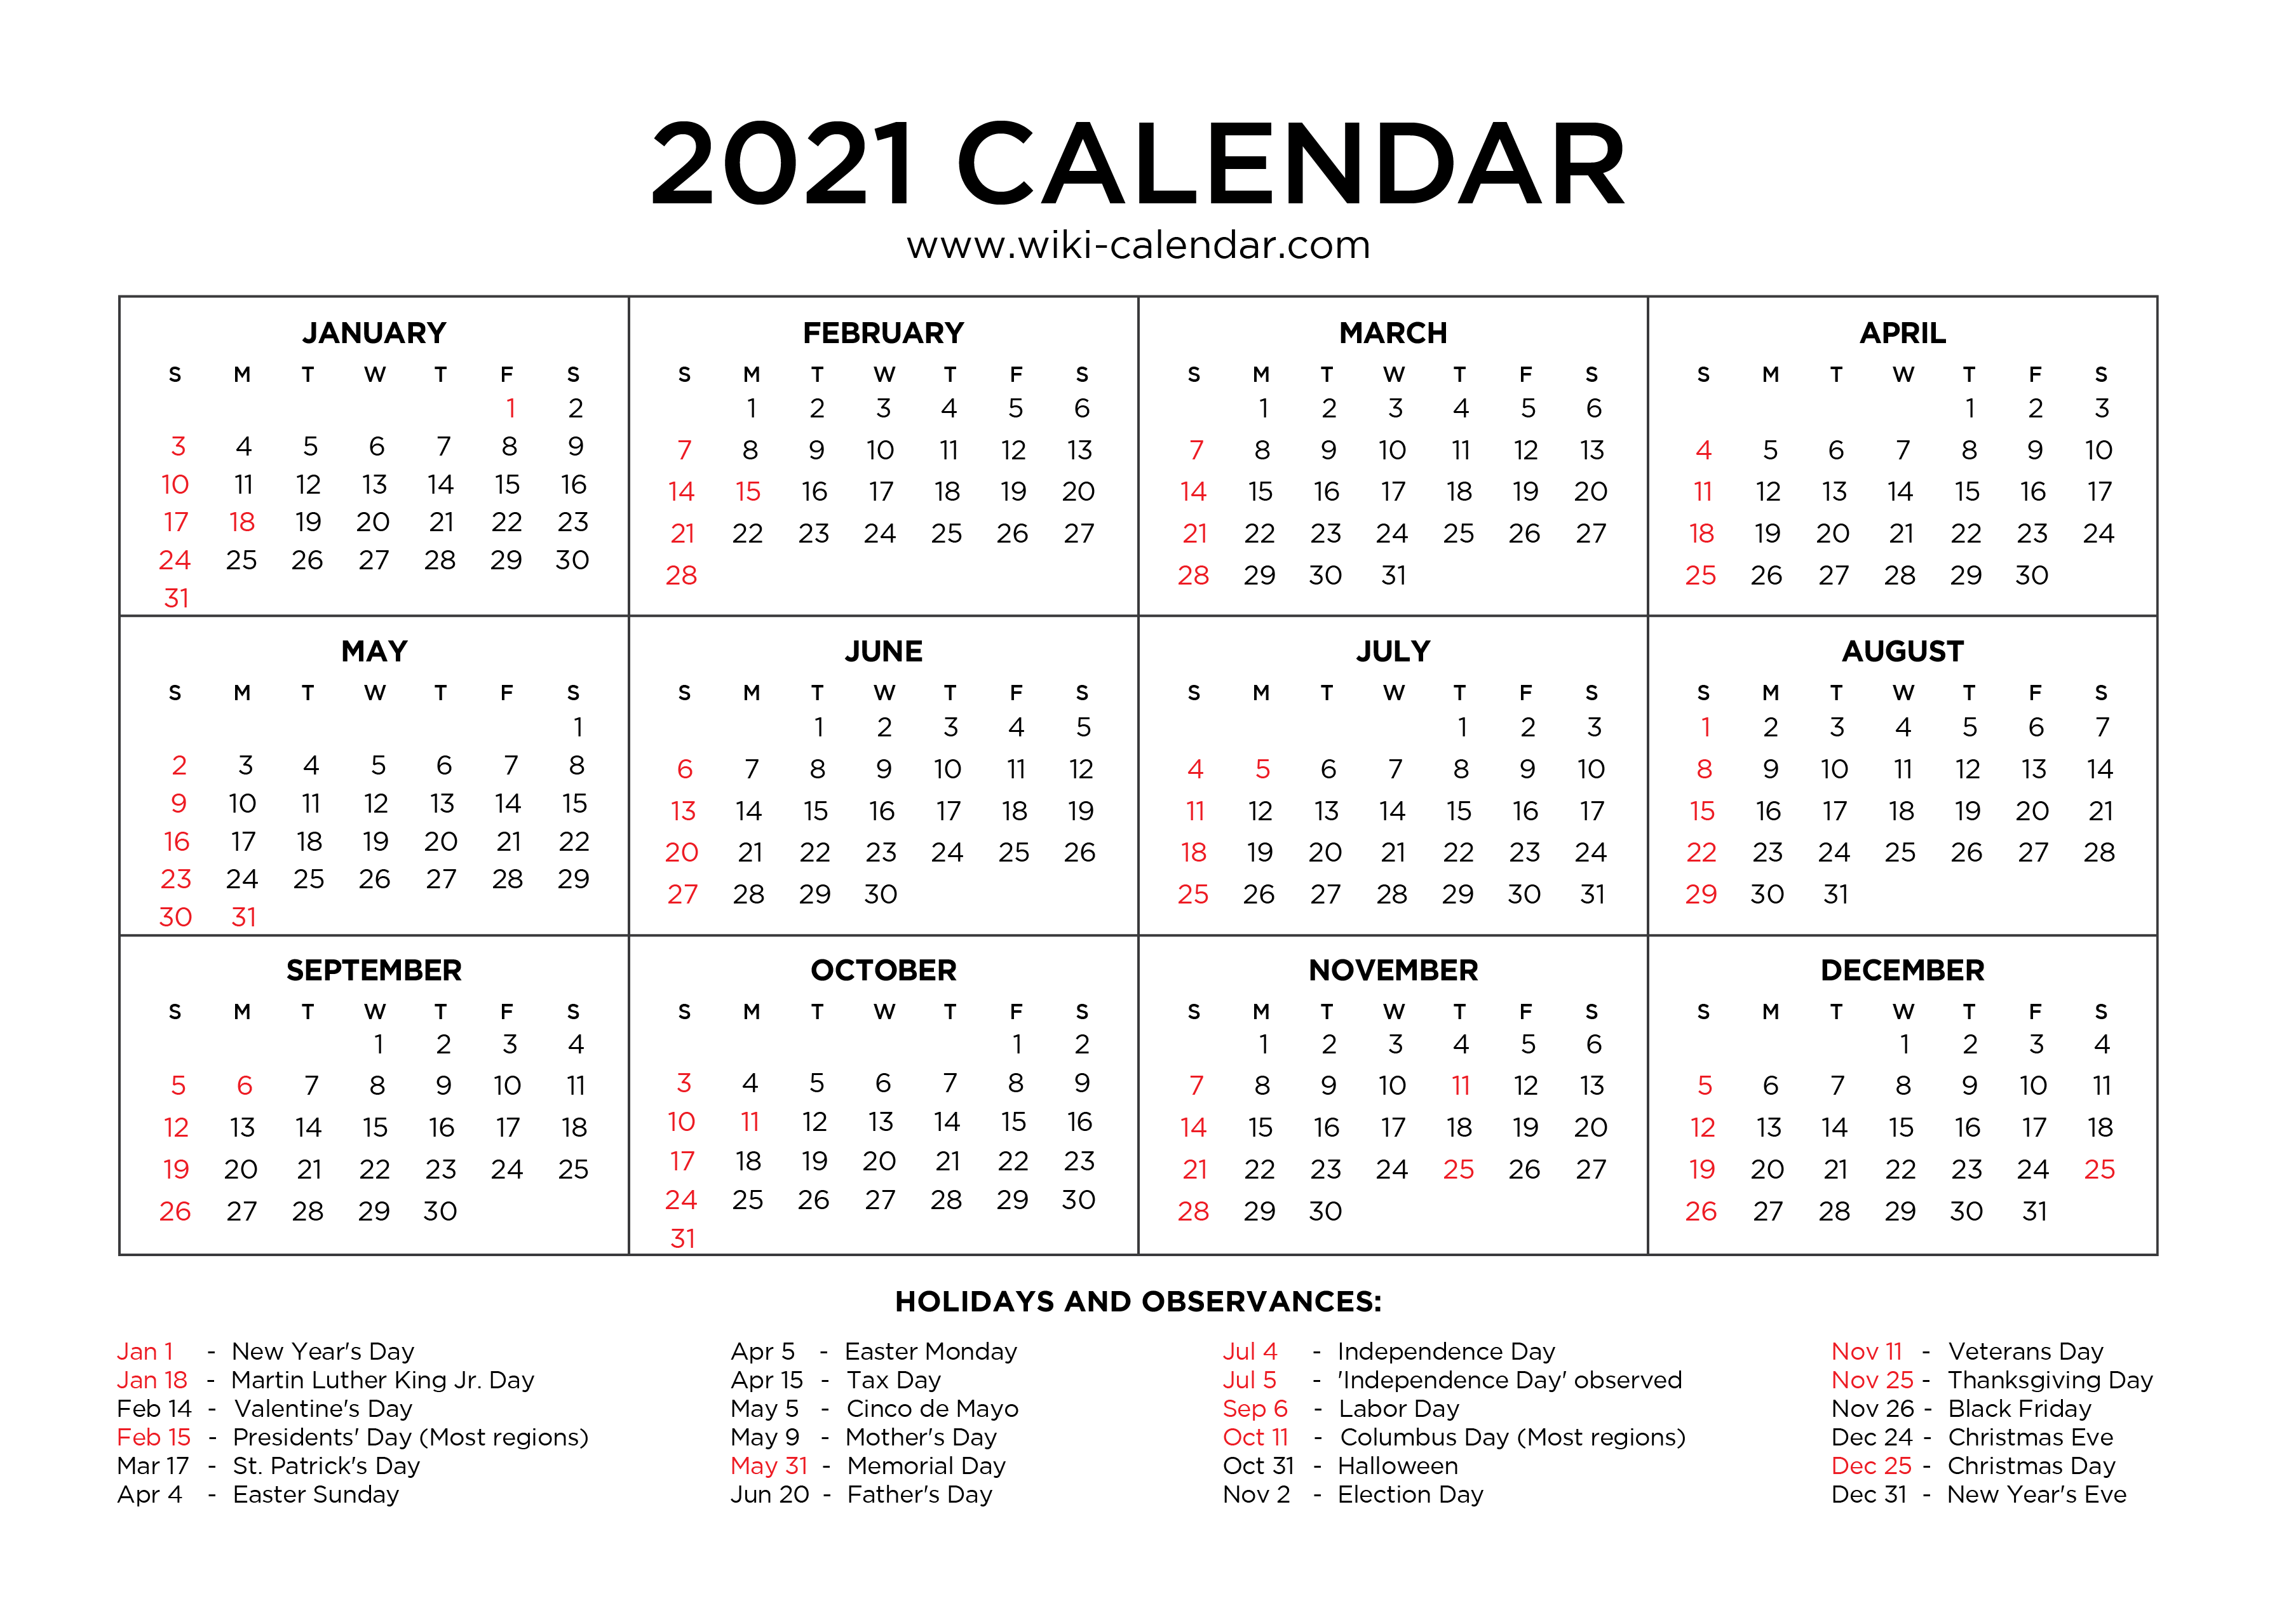 Free Printable 2021 Calendar By Month With Holidays | Free ...